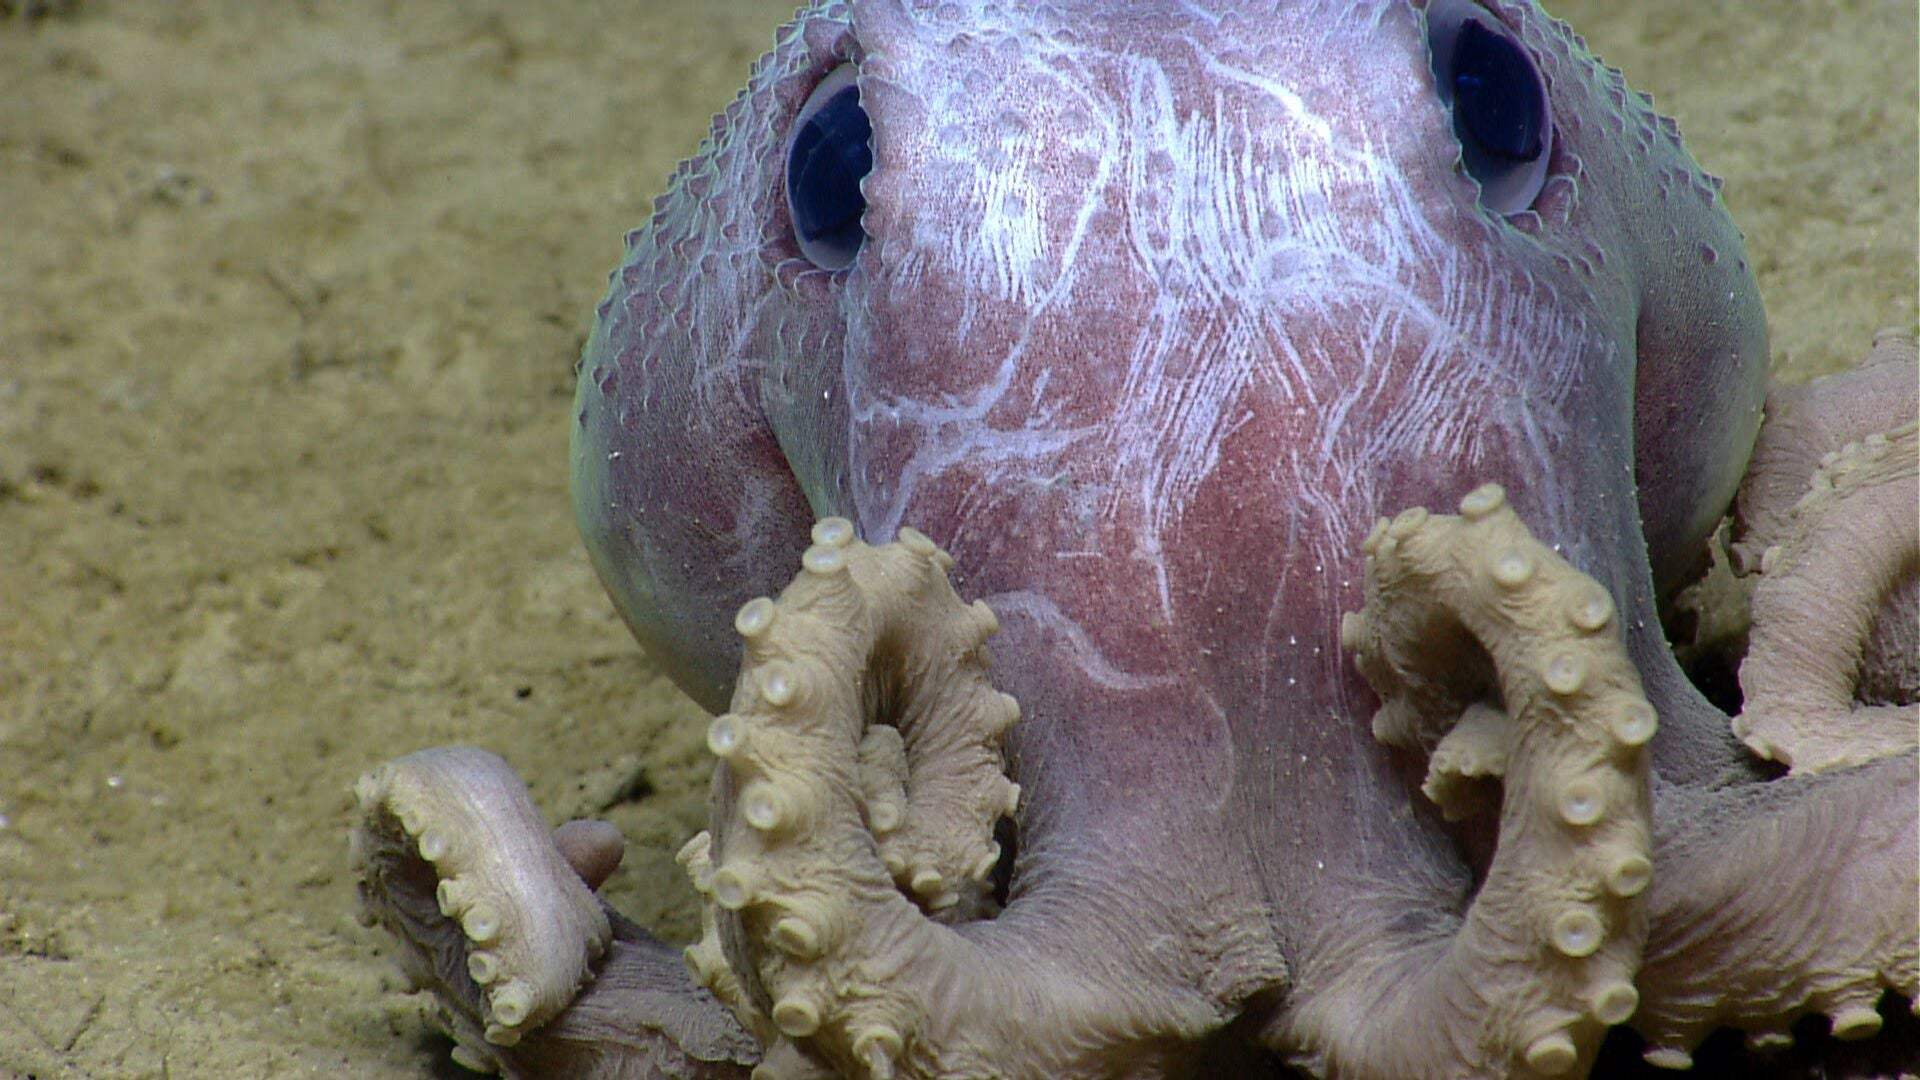 You can tell these adorable octopuses apart by their warts